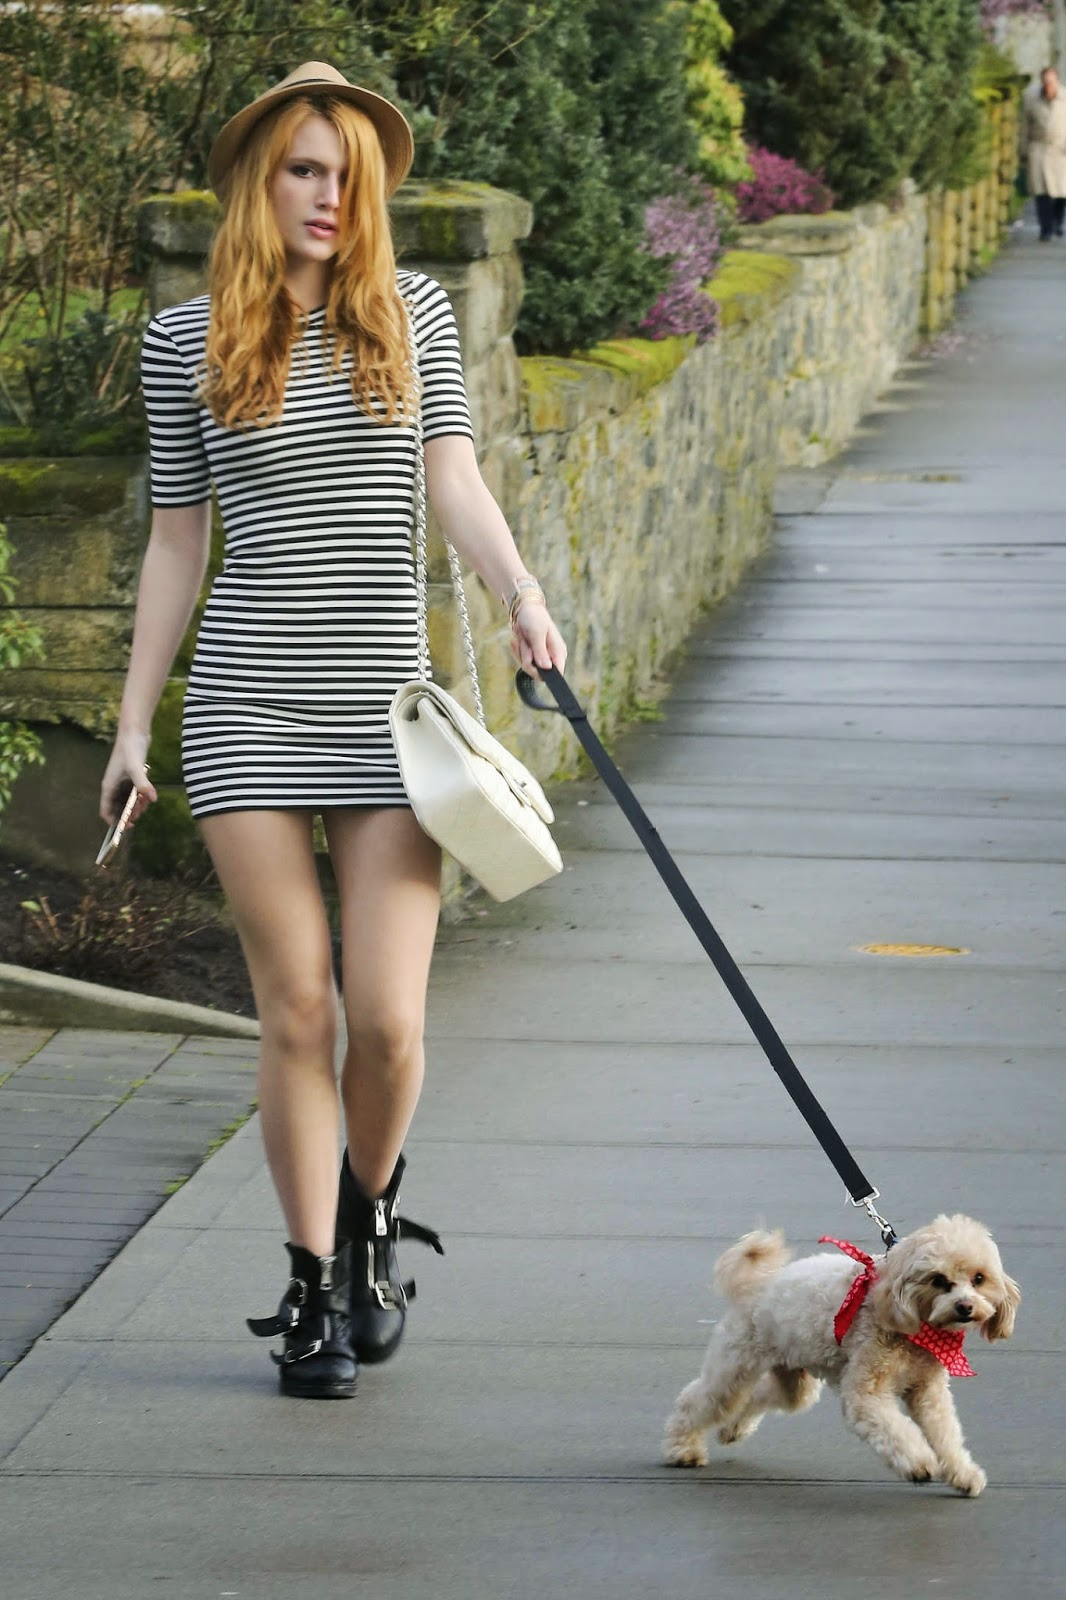 Actress, Singer, Model, Dancer @ Bella Thorne Walking her Dog at Park in LA